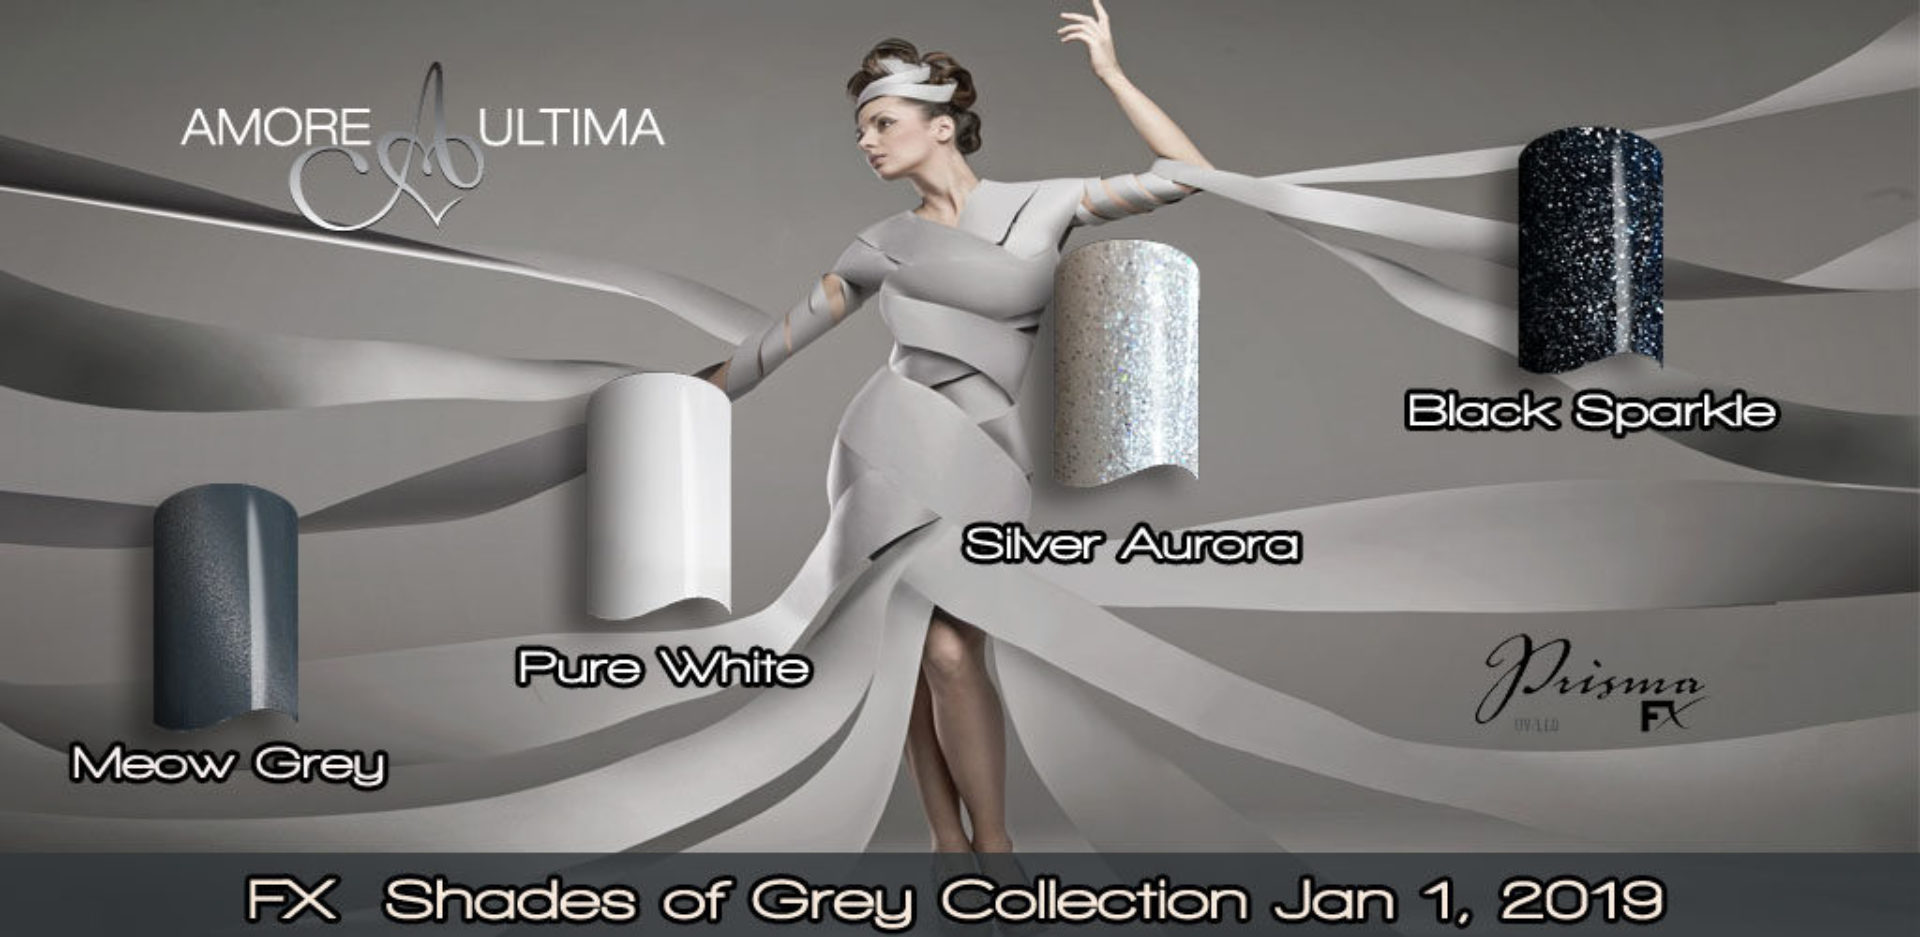 1FX Shades of Grey Collection 2019